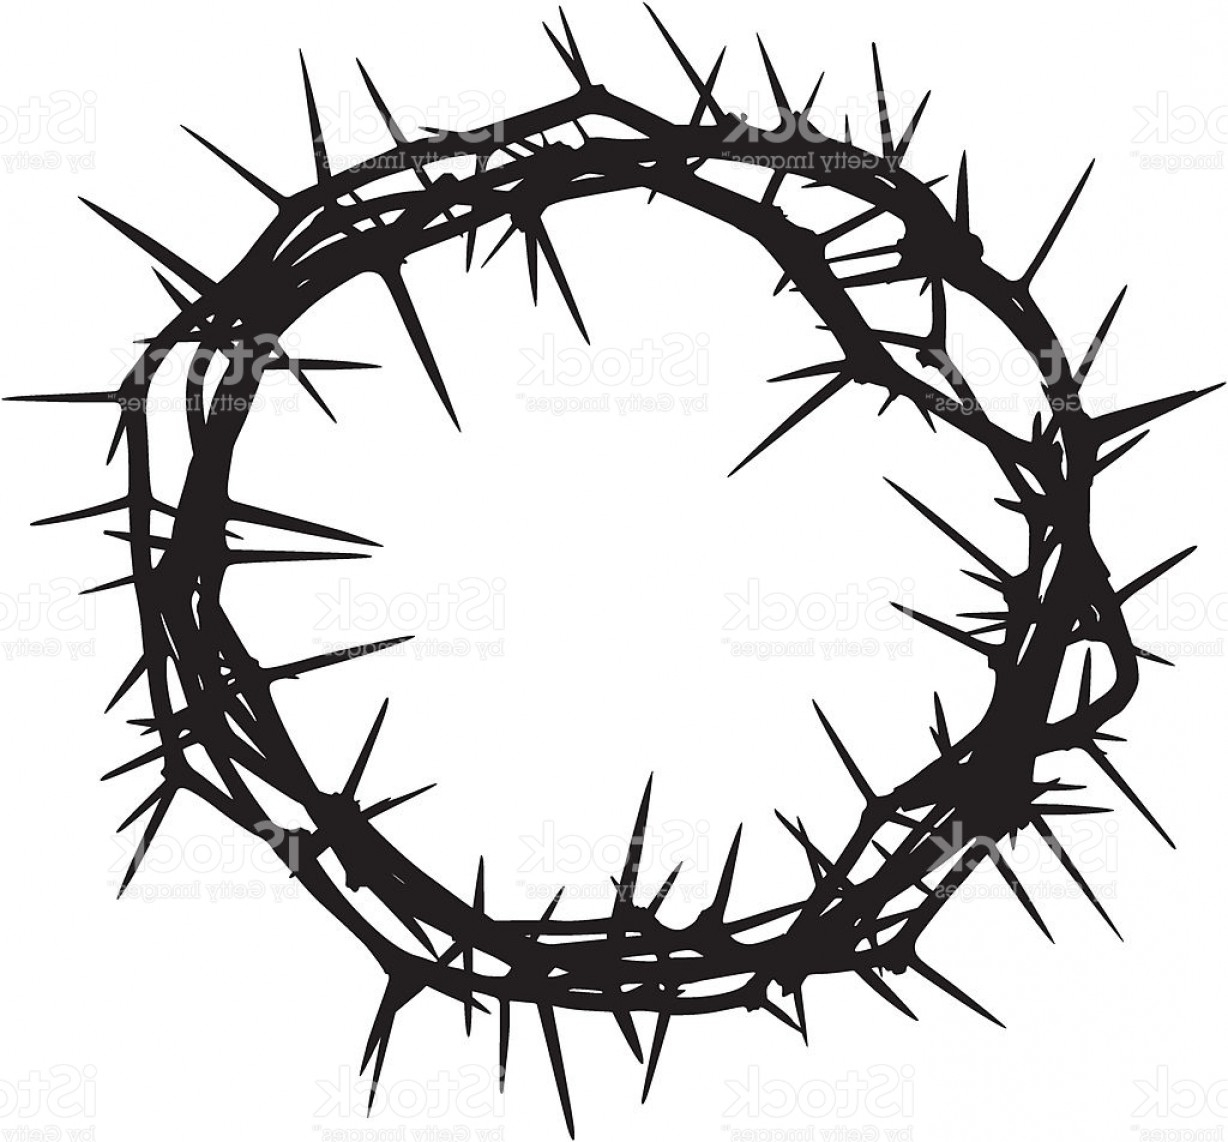 1228x1142 Crown Thorns Drawing Exclusive Jesus On Cross With Crown